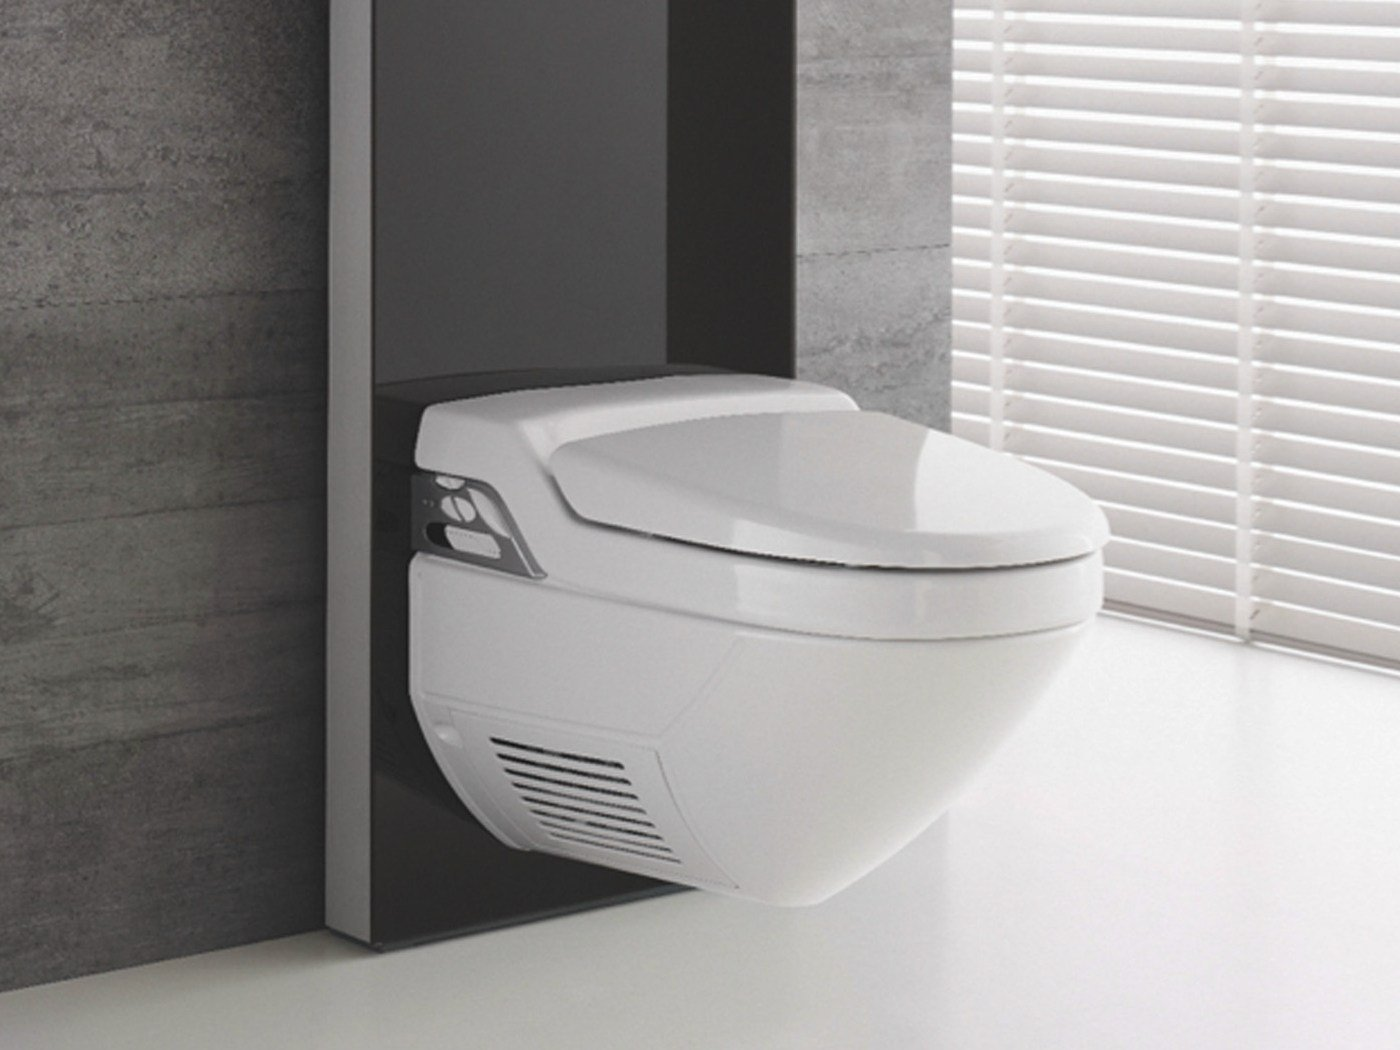 wc bidet in ceramica aquaclean 8000 plus collezione. Black Bedroom Furniture Sets. Home Design Ideas